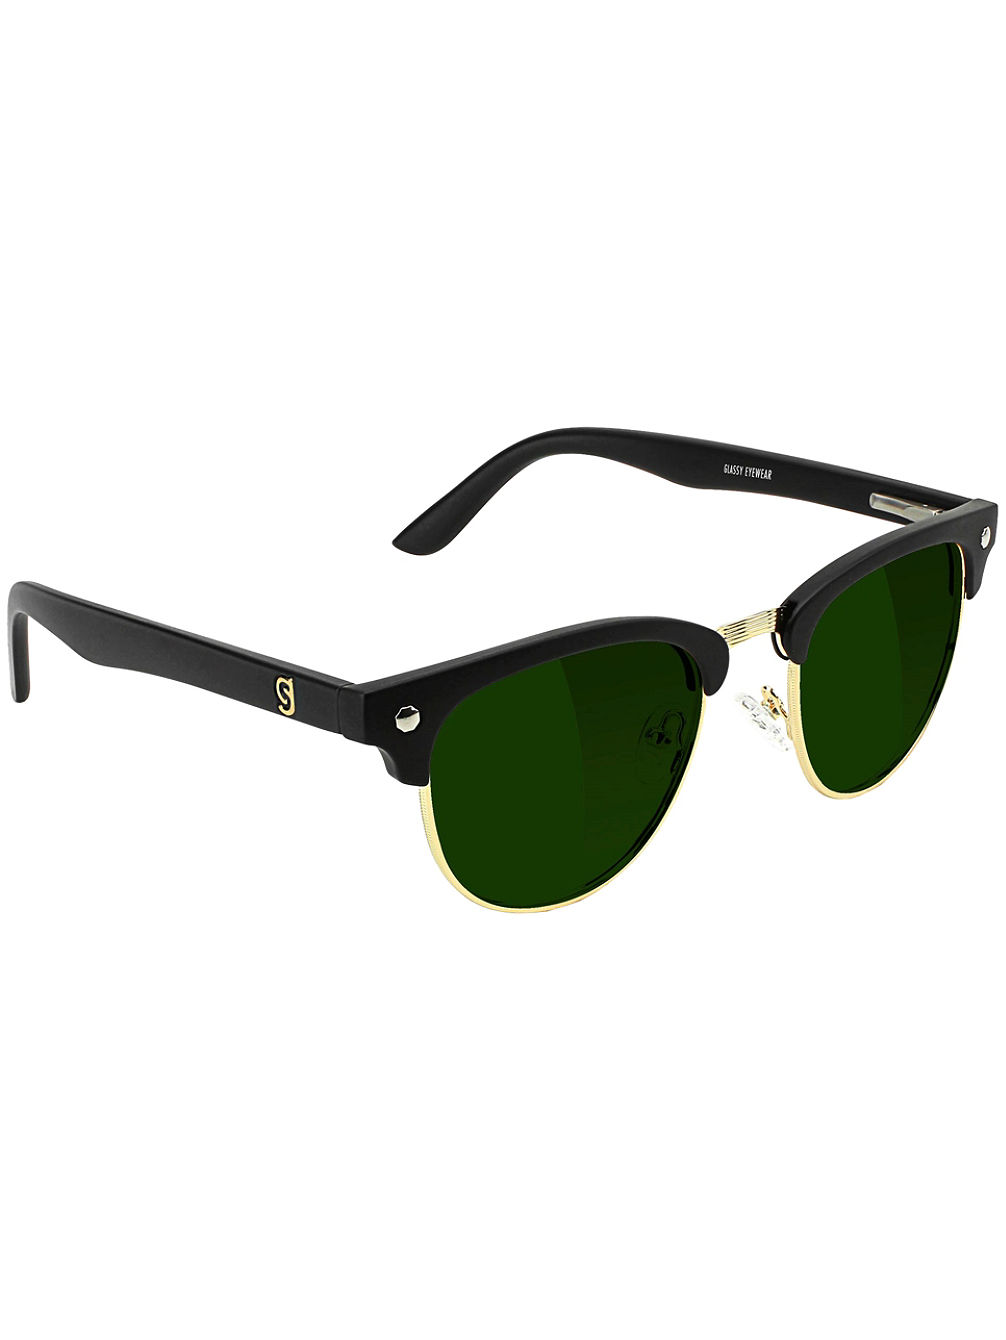 Morrison Premium Polarized Black/Green L